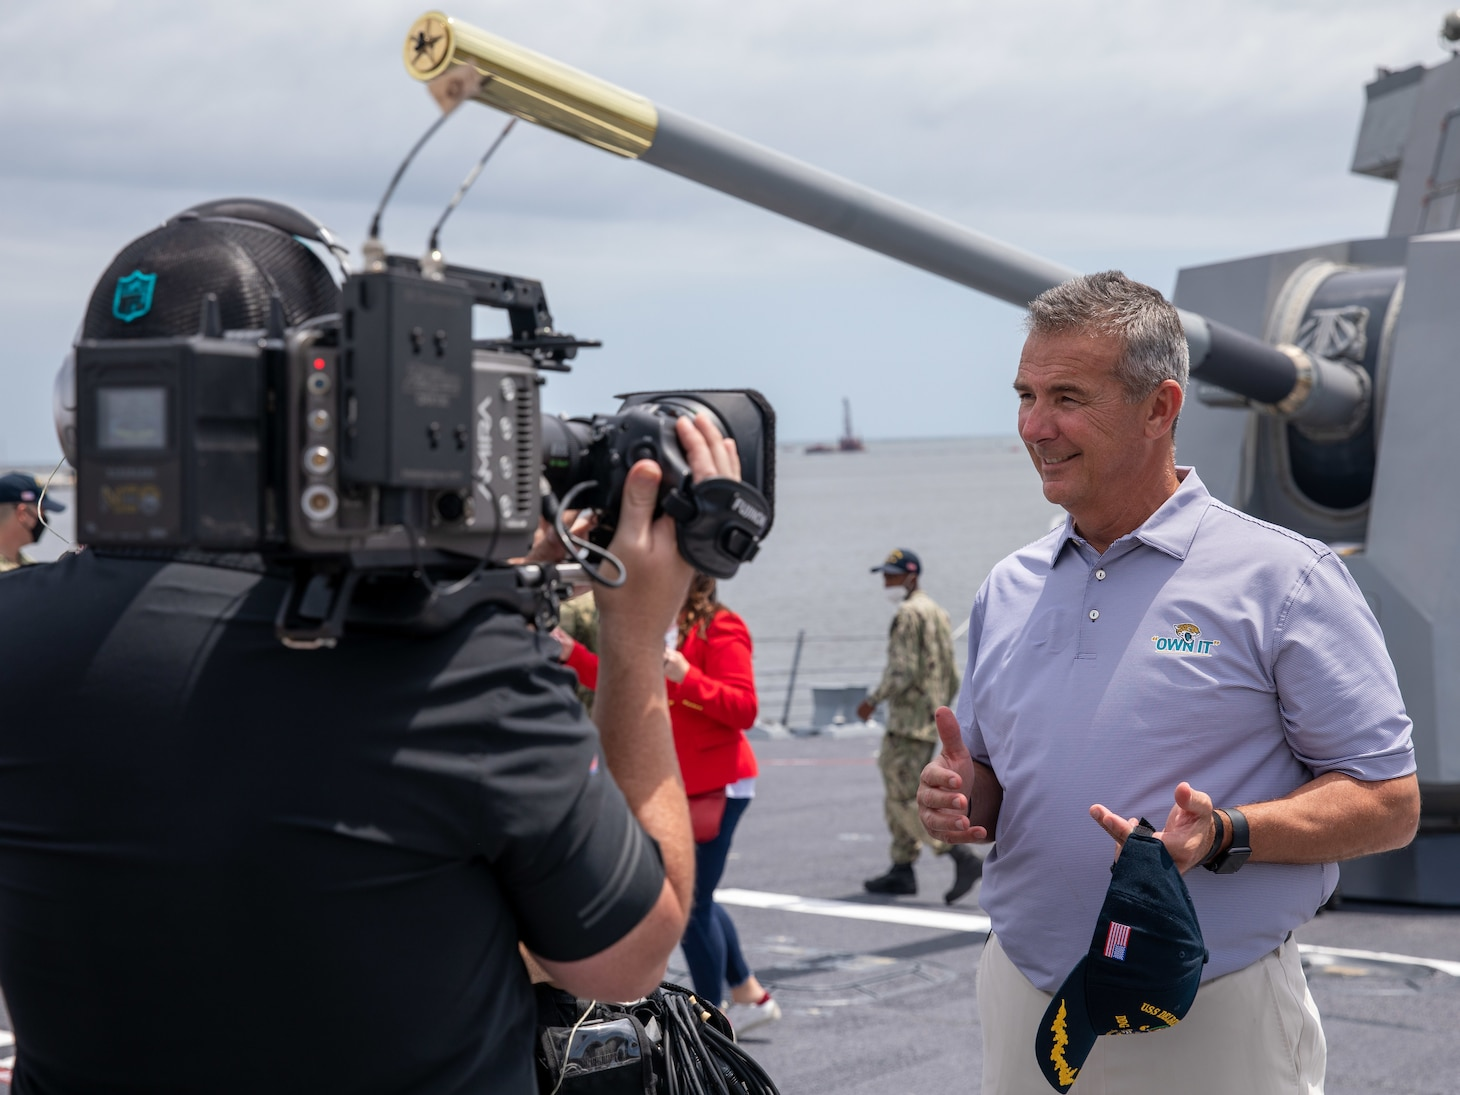 Jacksonville Jaguars head coach Urban Meyer addresses various media outlets aboard the Arleigh-Burke class guided-missile destroyer USS Delbert D. Black (DDG 119).